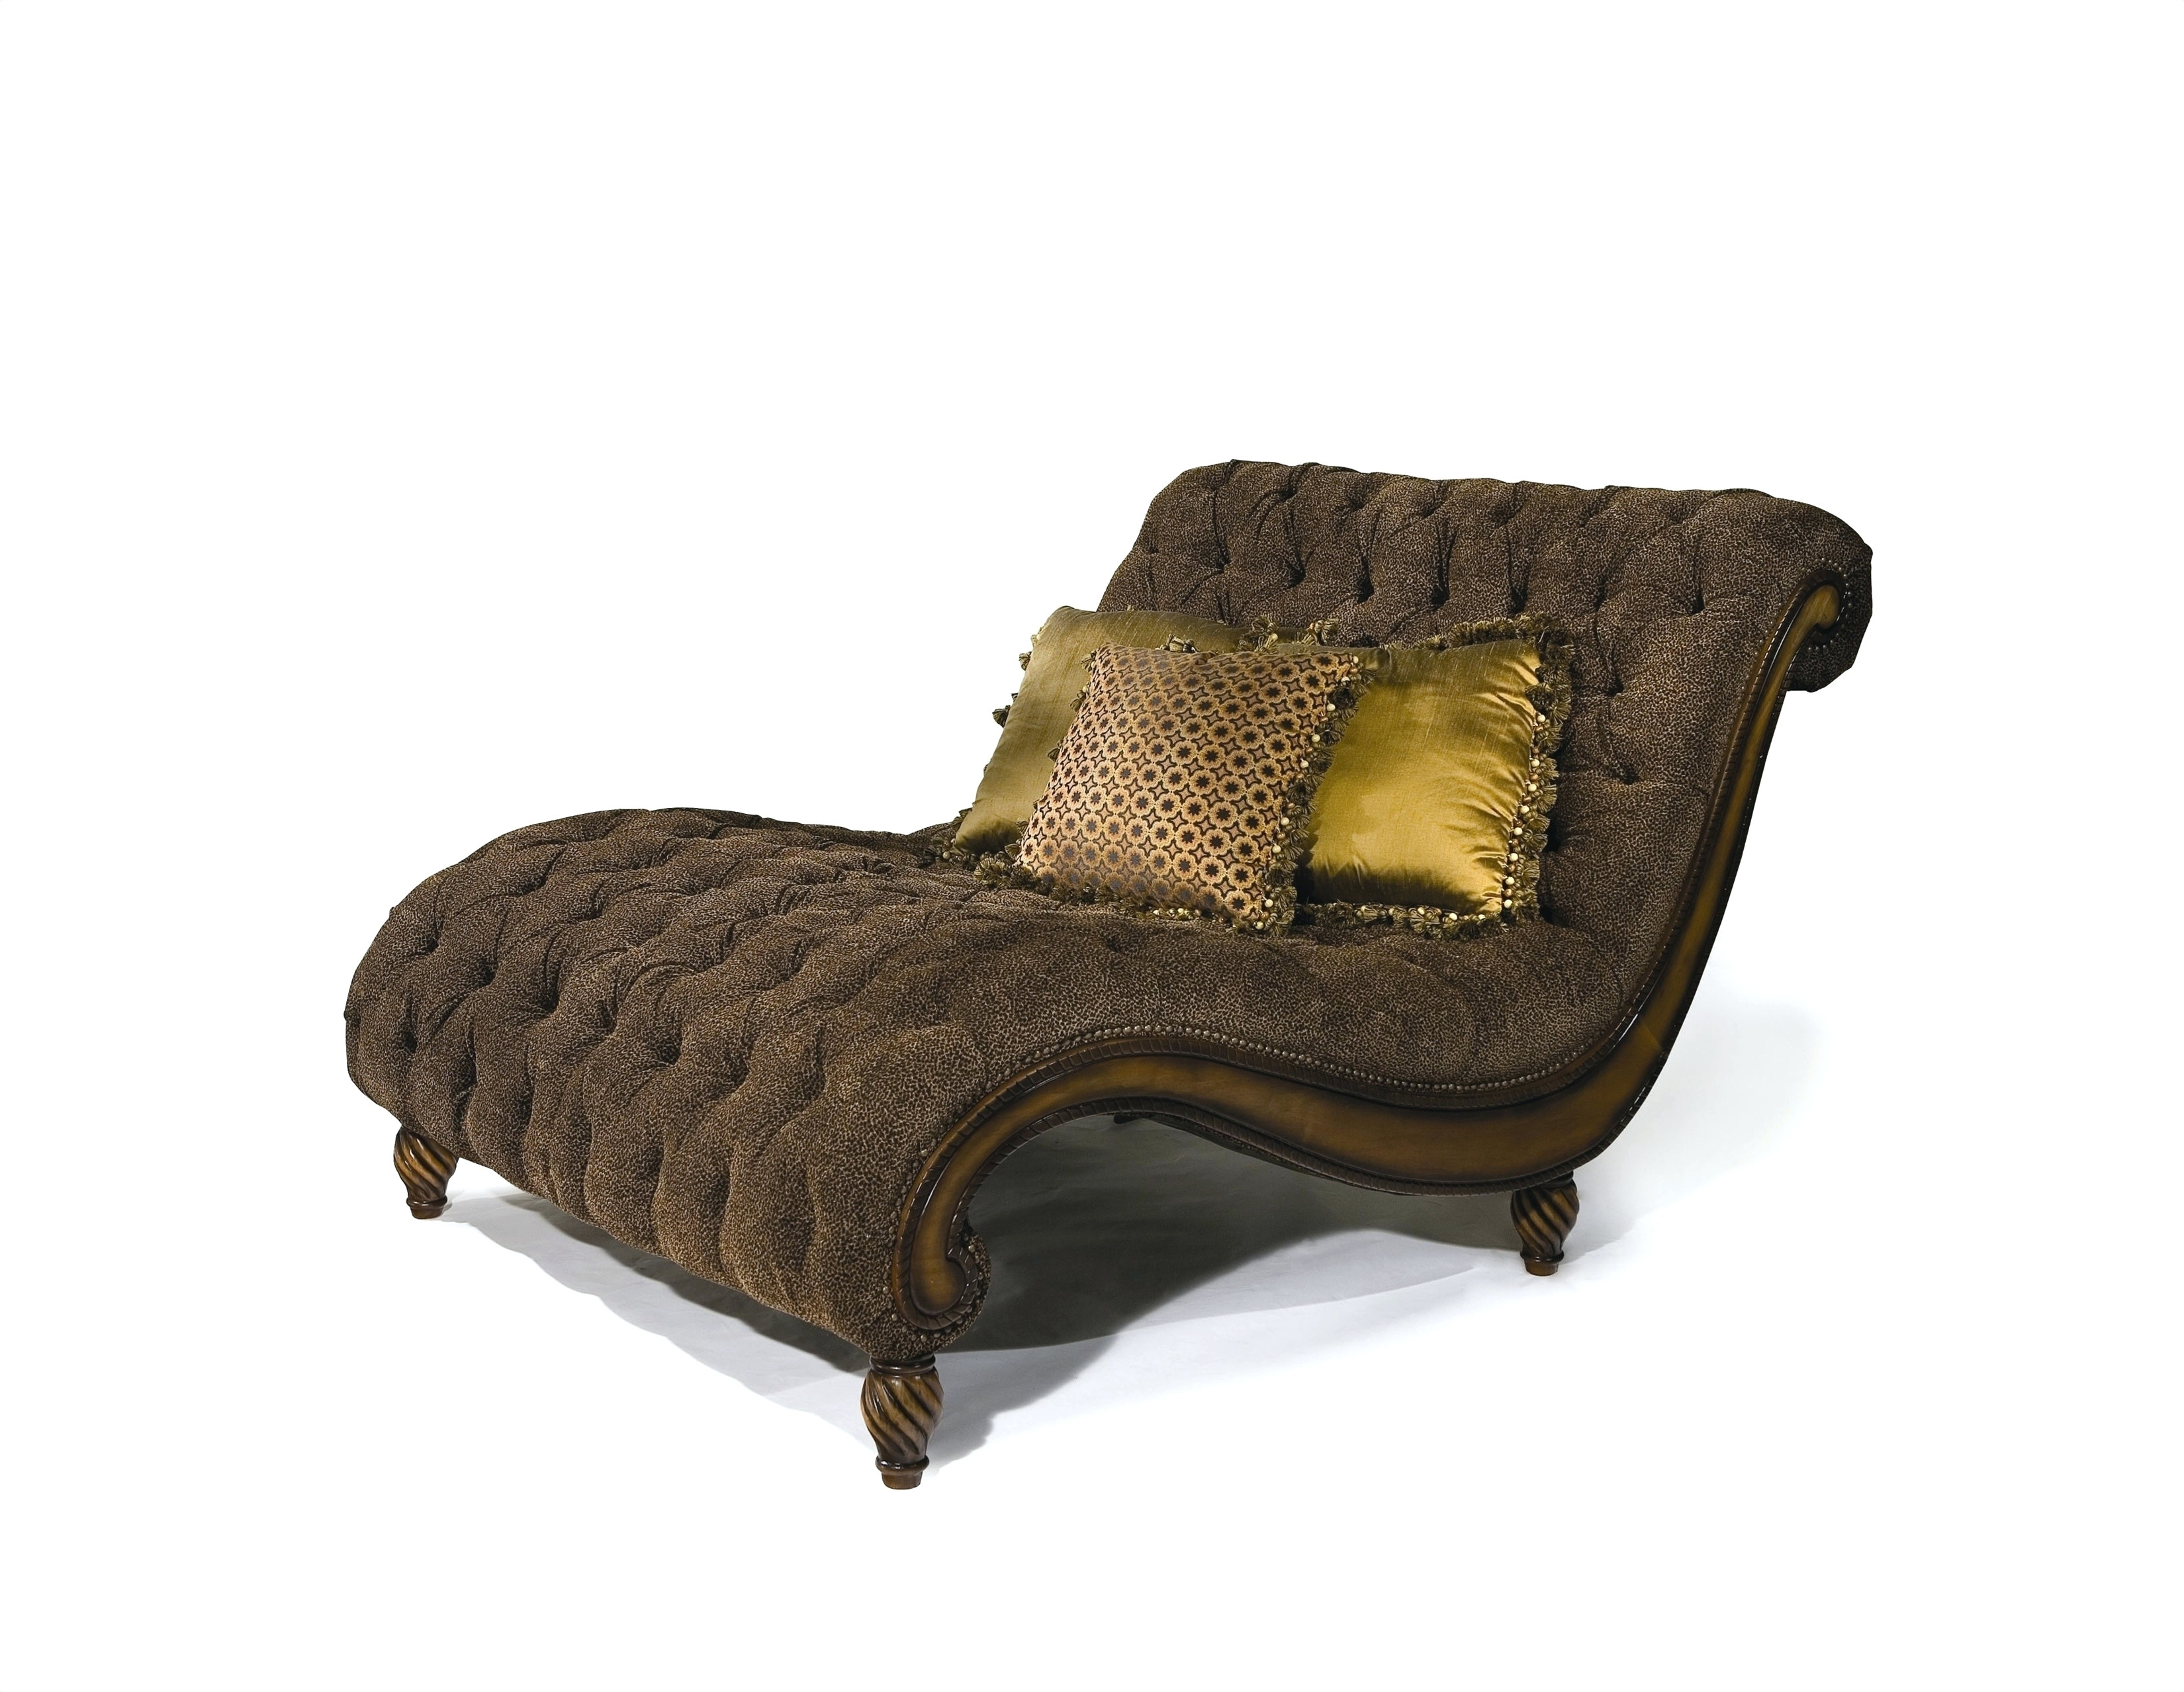 Fashionable Leopard Chaise Lounge Chair • Lounge Chairs Ideas With Regard To Luxury Chaise Lounge Chairs (View 9 of 15)